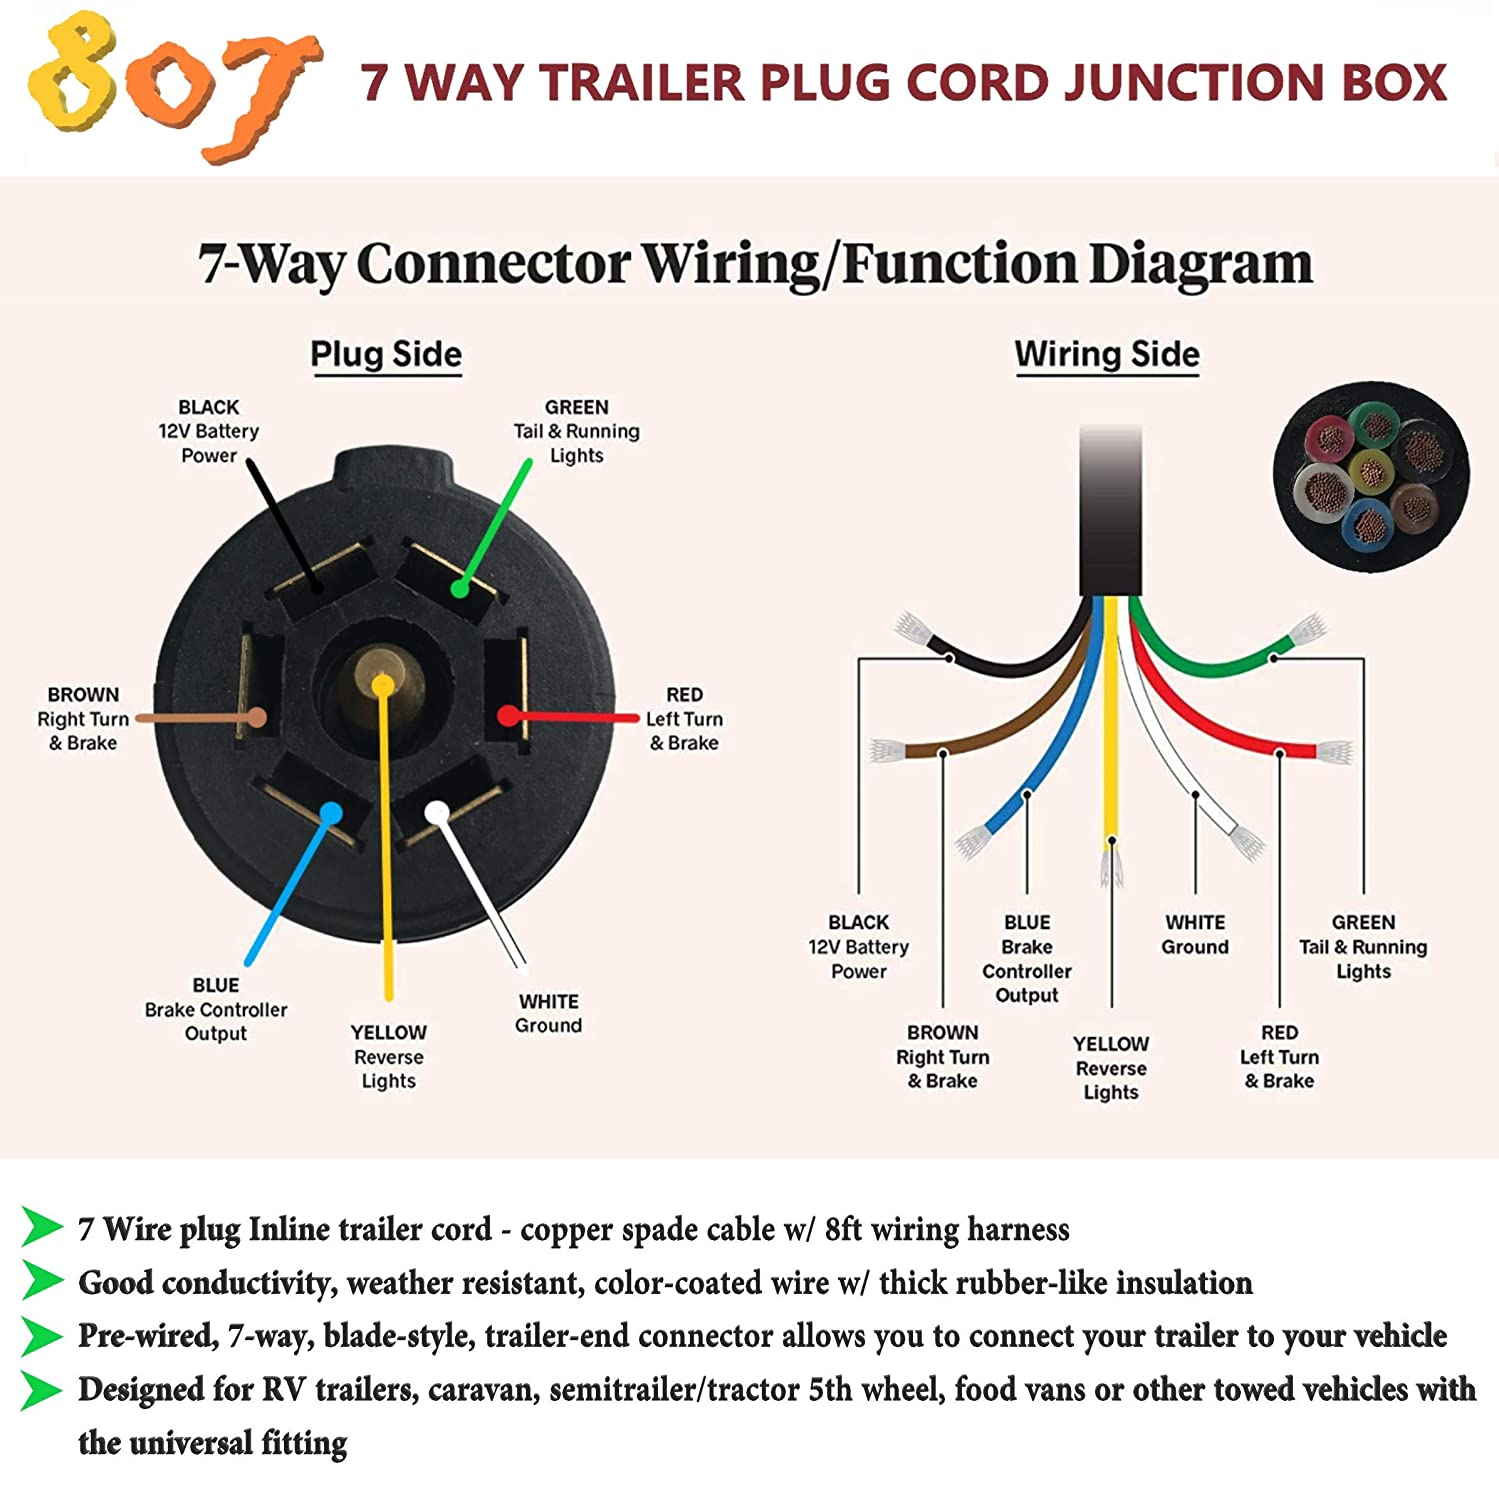 7 Way Rv Plug Wiring Scheme - Example Wiring Diagram Wiring A Trailer Plug on wiring a trailer harness, wiring a trailer hitch, wiring a trailer lights, wiring a trailer battery, wiring a socket, wiring a trailer winch, wiring a trailer cable,